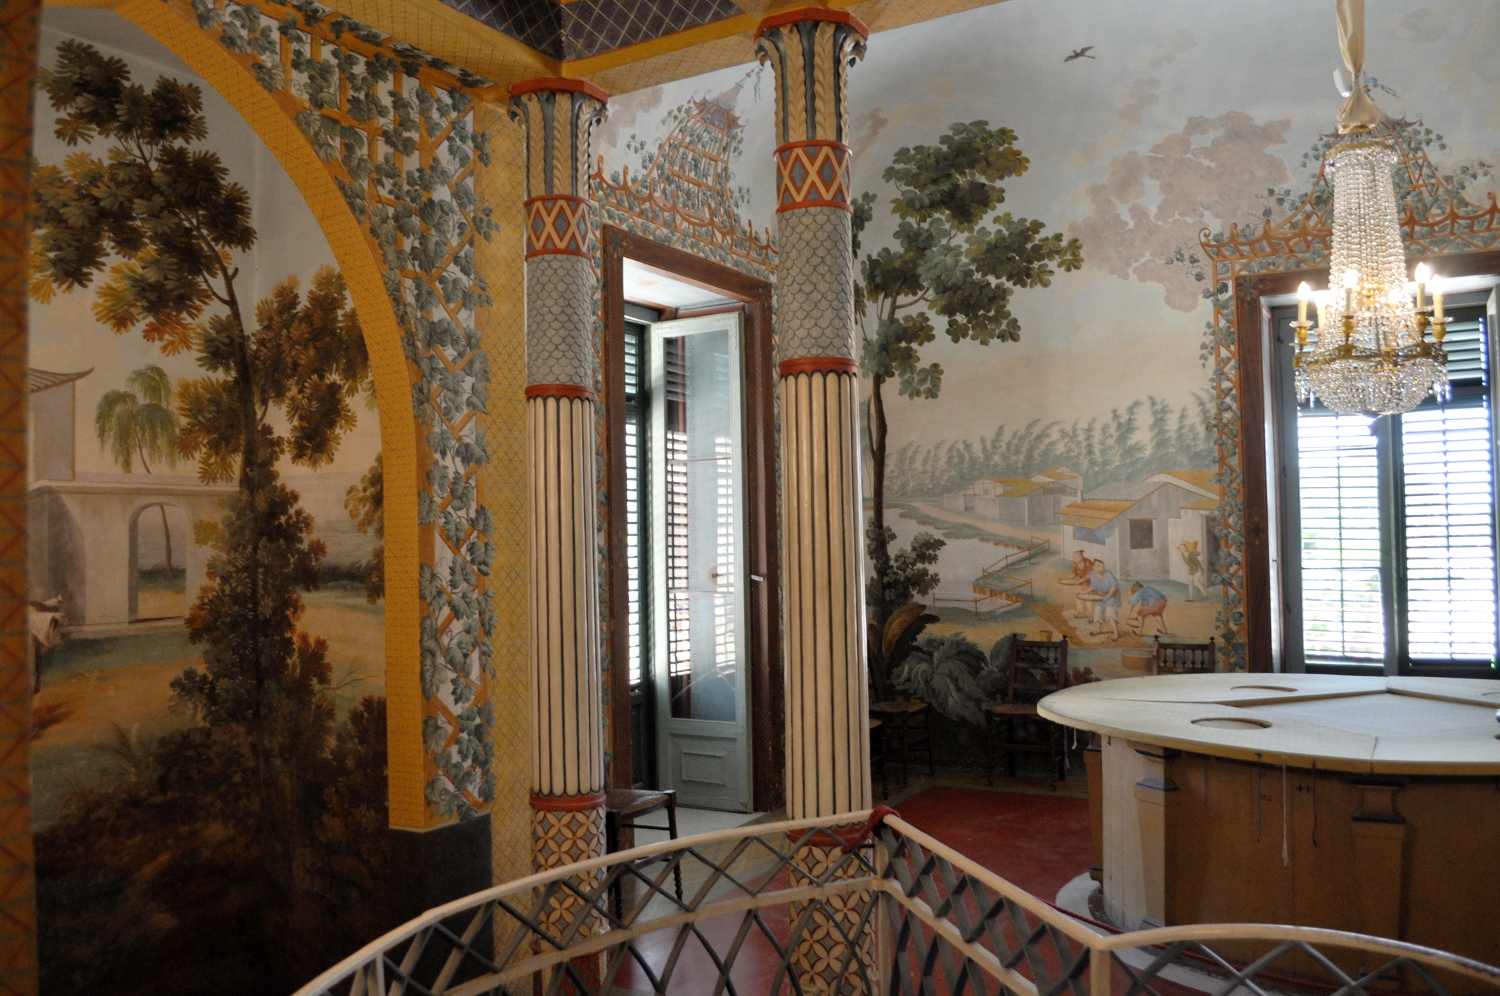 rocaille-blog-palazzina-cinese-palermo-8